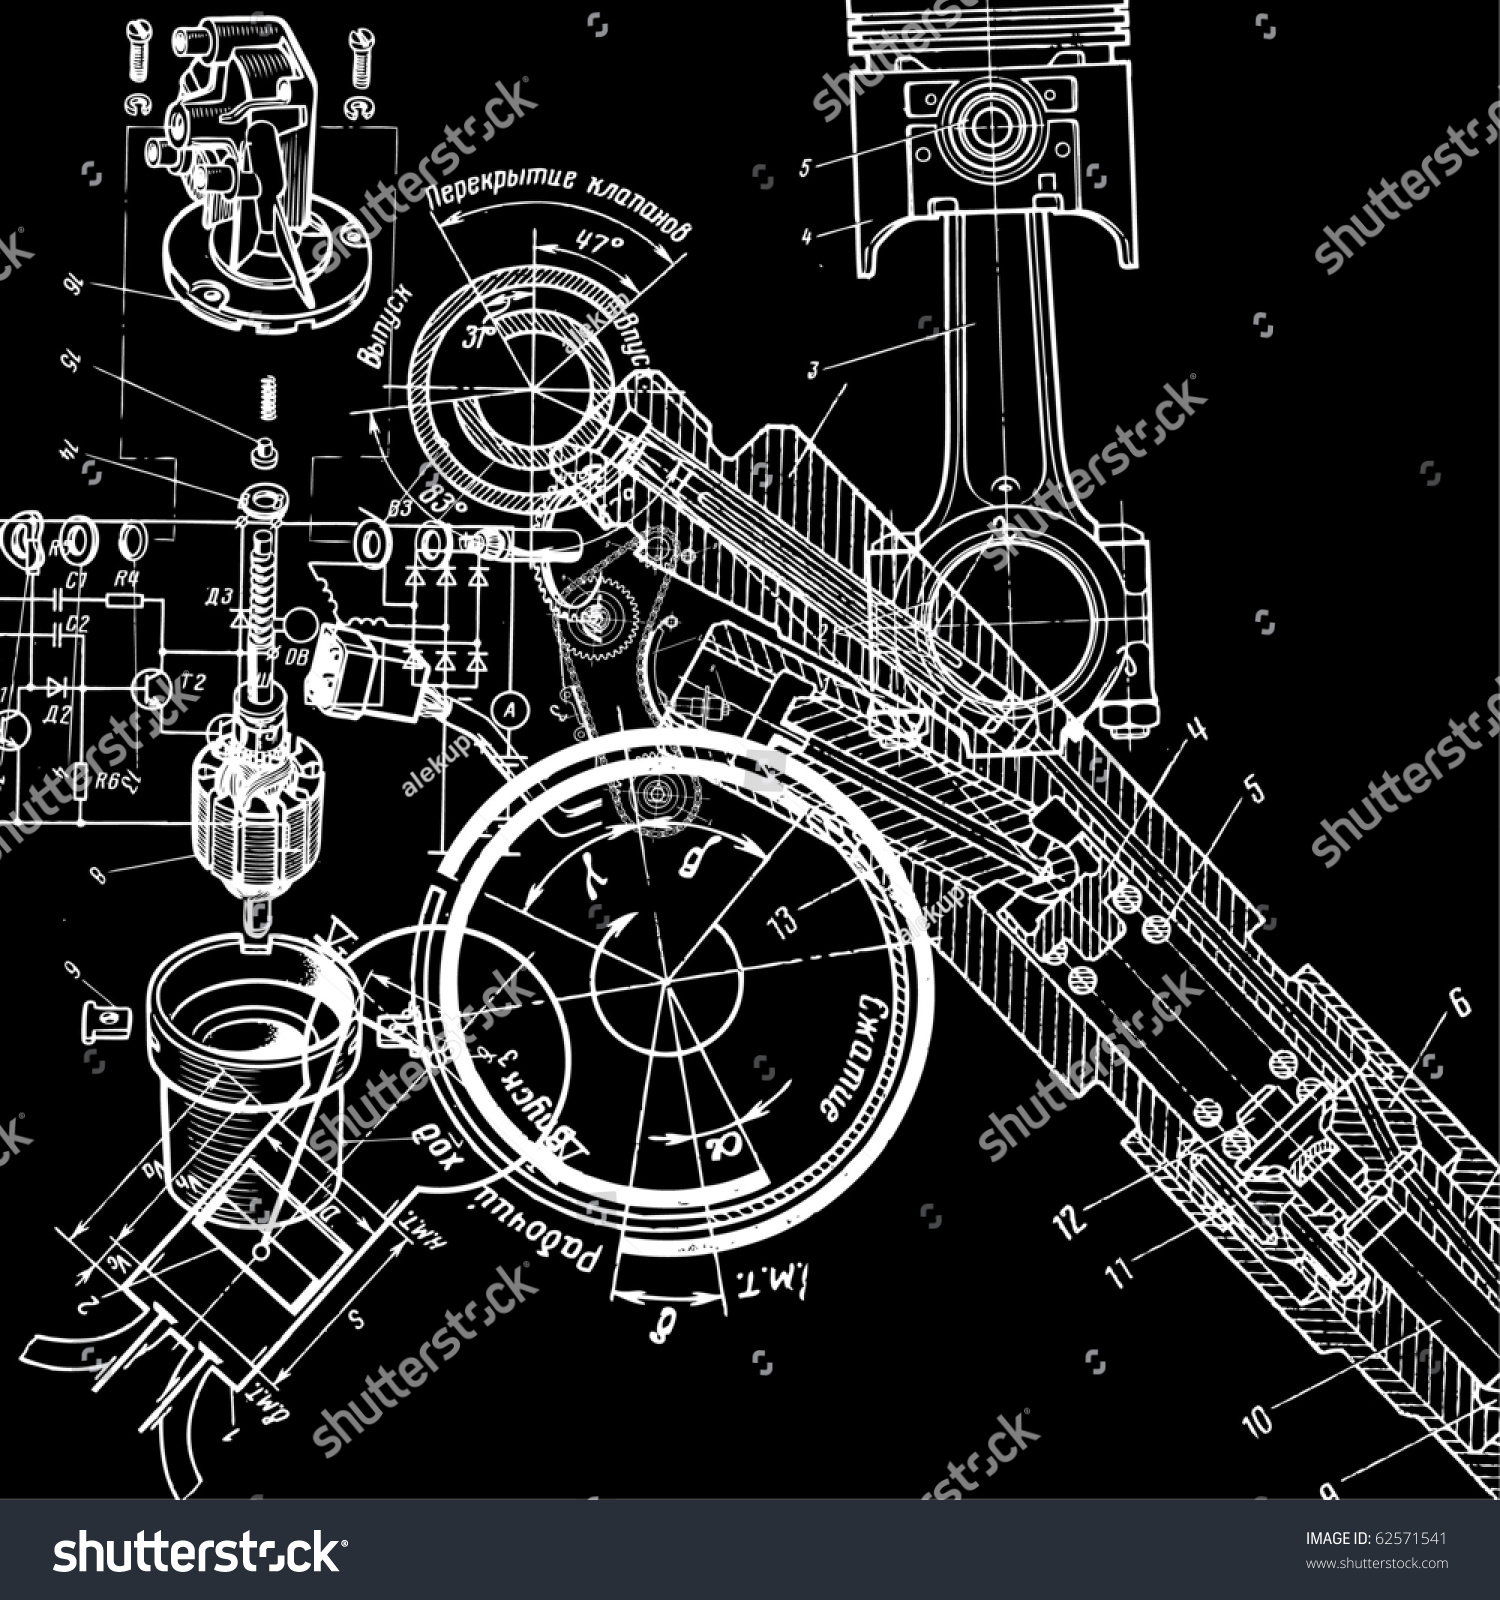 Technical Drawing Stock Vector Illustration 62571541